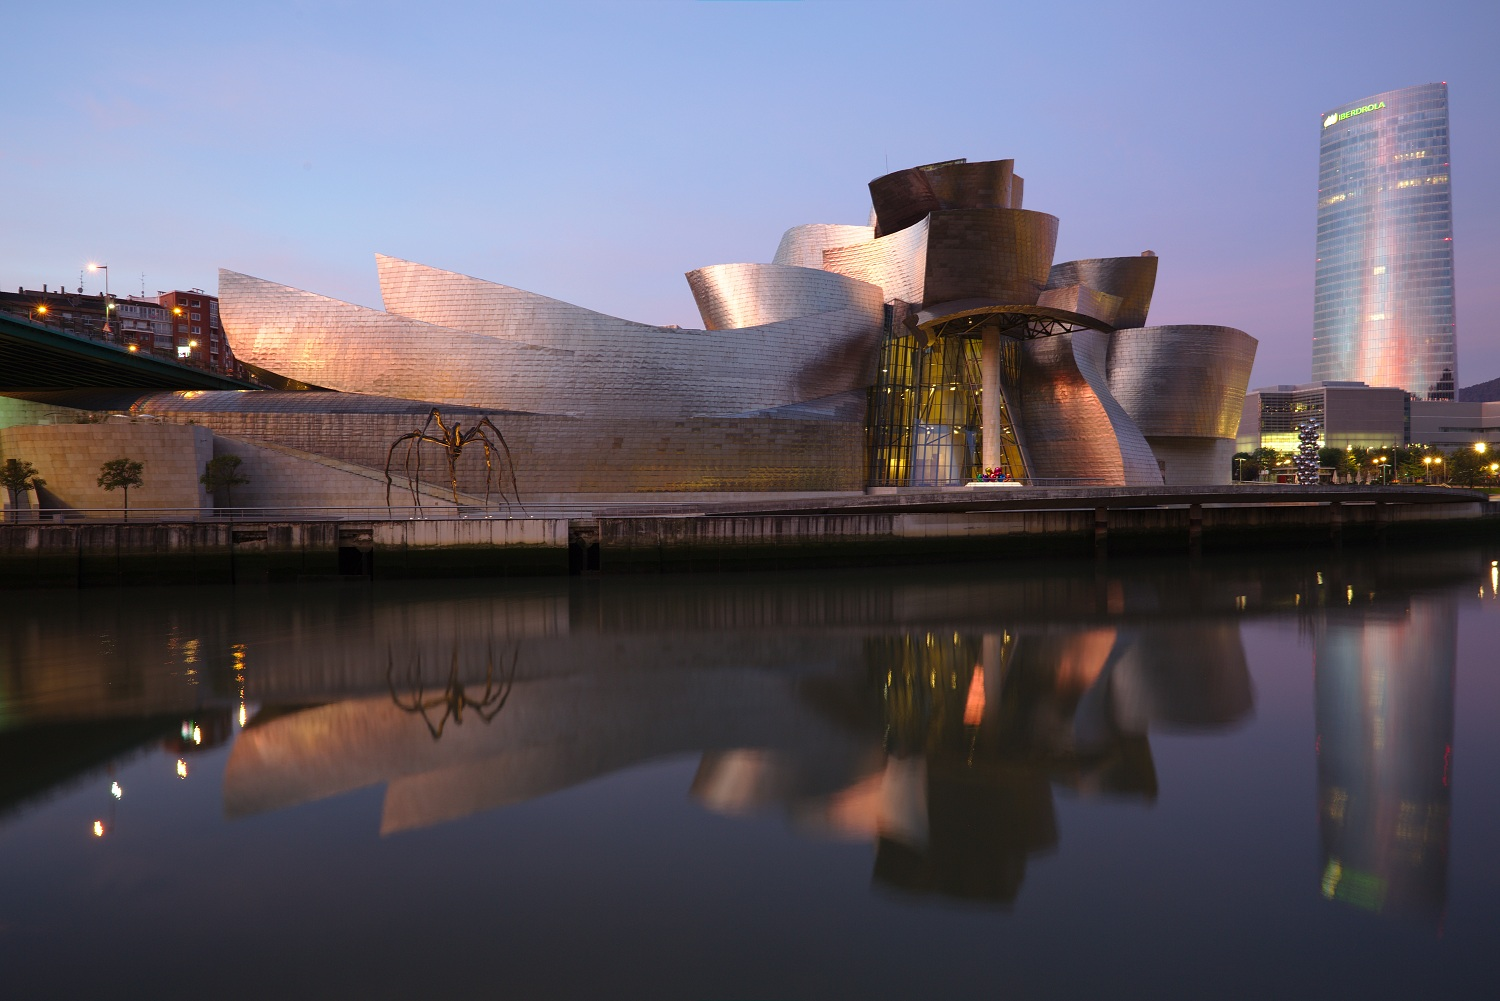 Bilbao_-_Guggenheim_By PA - Own work, CC BY-SA 4.0, httpscommons.wikimedia.orgwindex.phpcurid=45169992